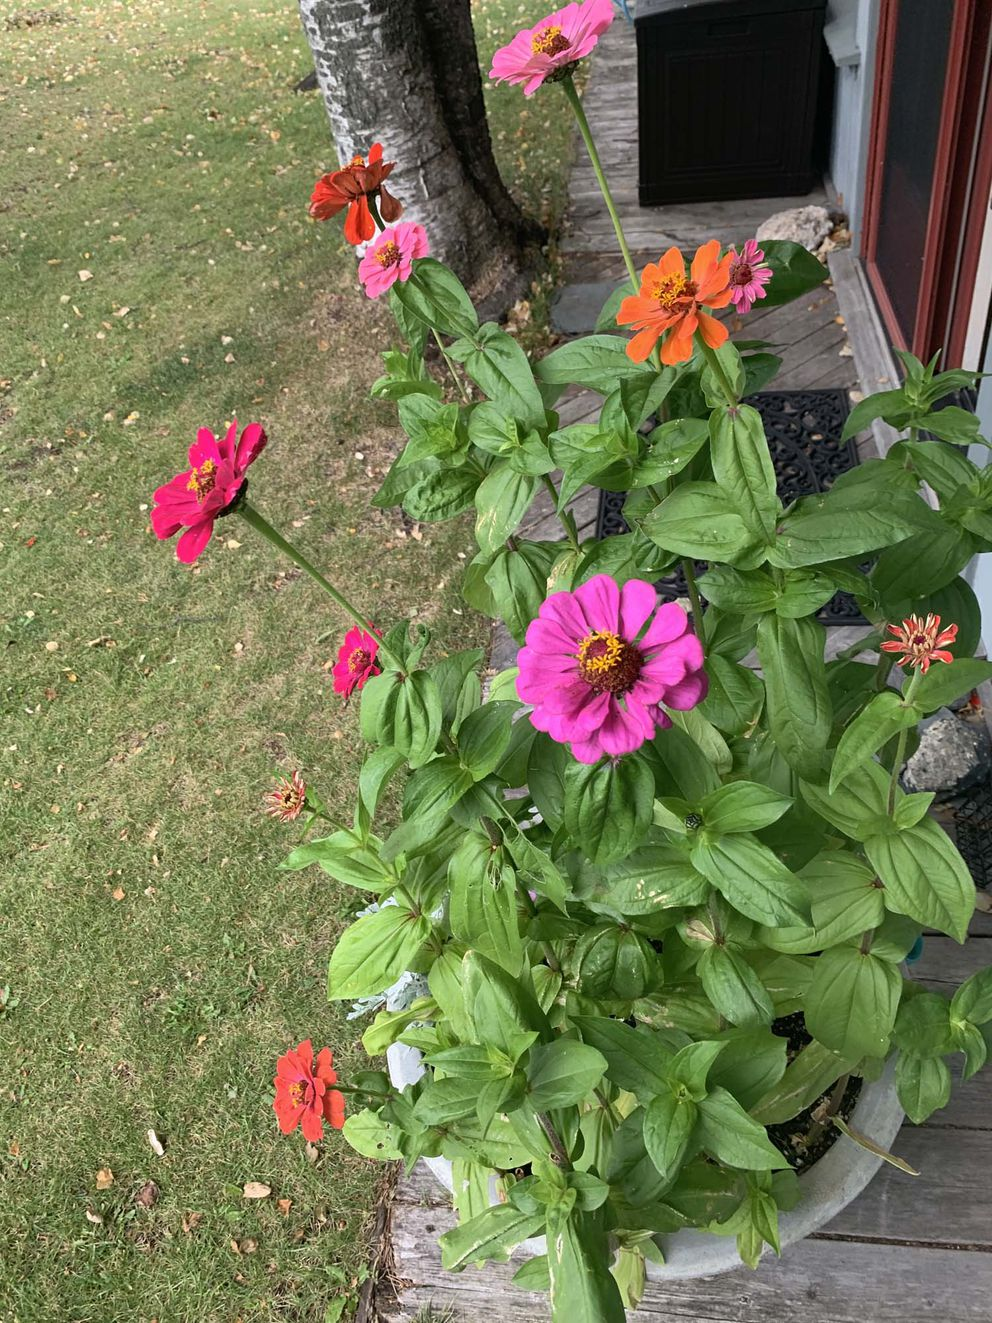 Zinnias come in all sorts of colors, sizes and styles. (Photo by Jeff Lowenfels)